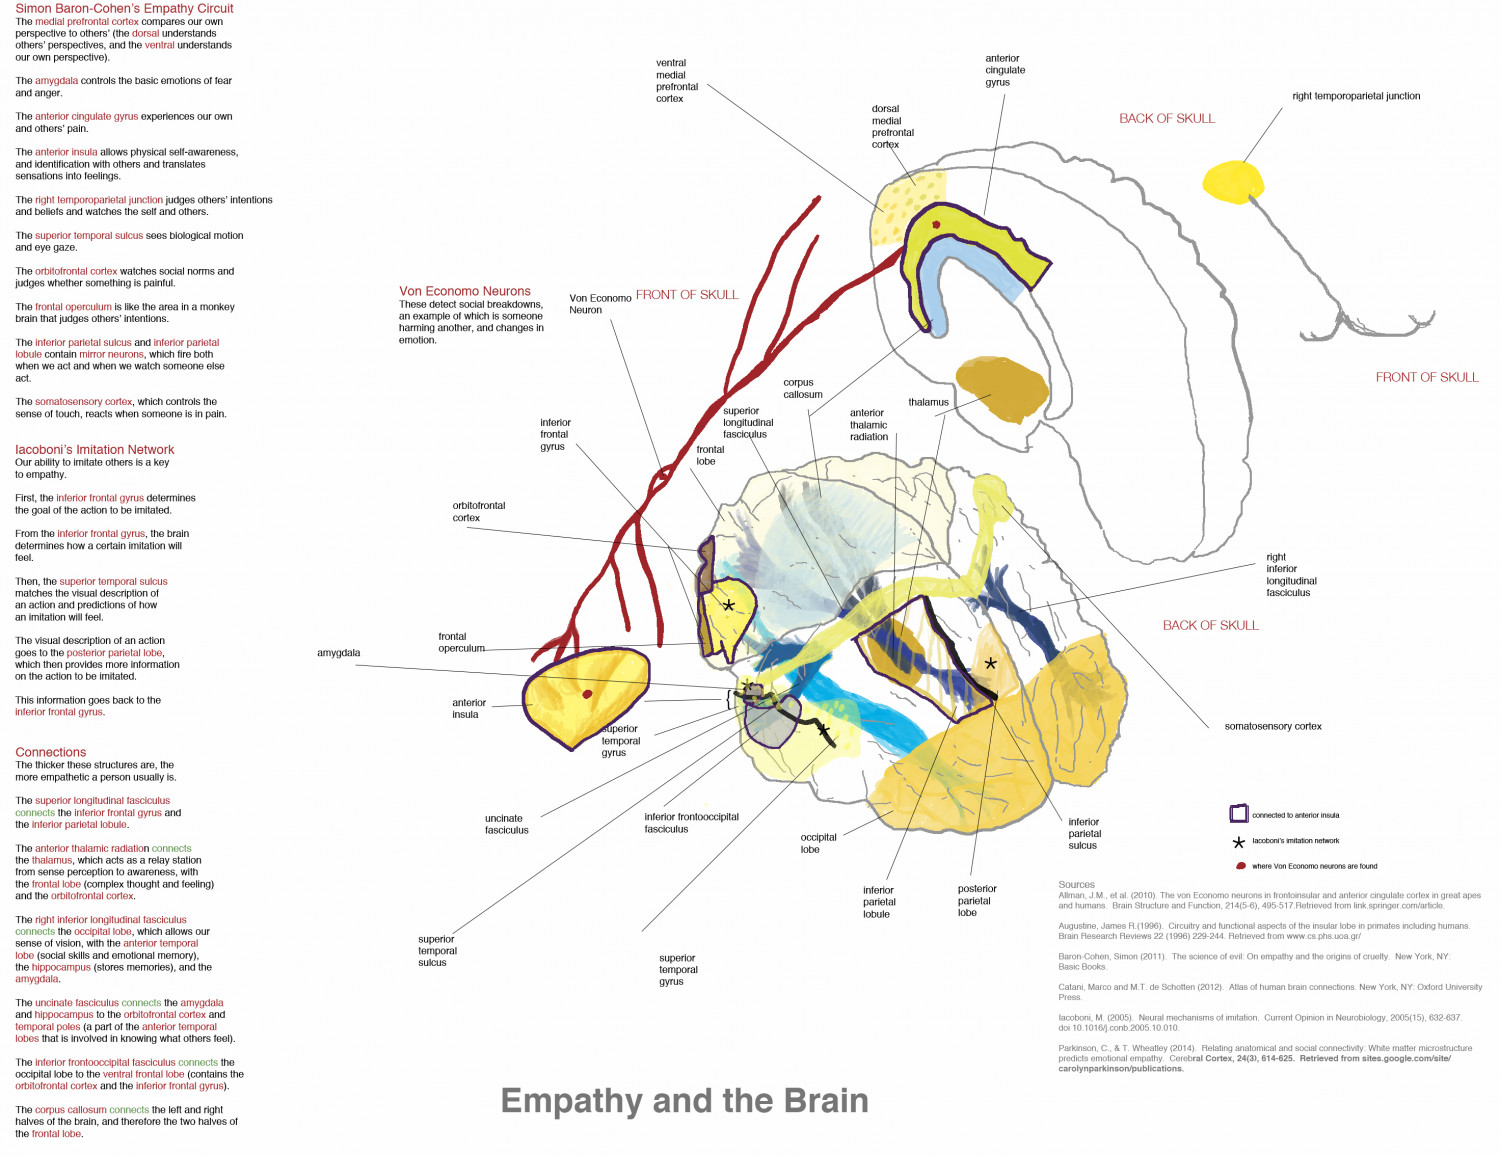 Empathy and the Brain Infographic